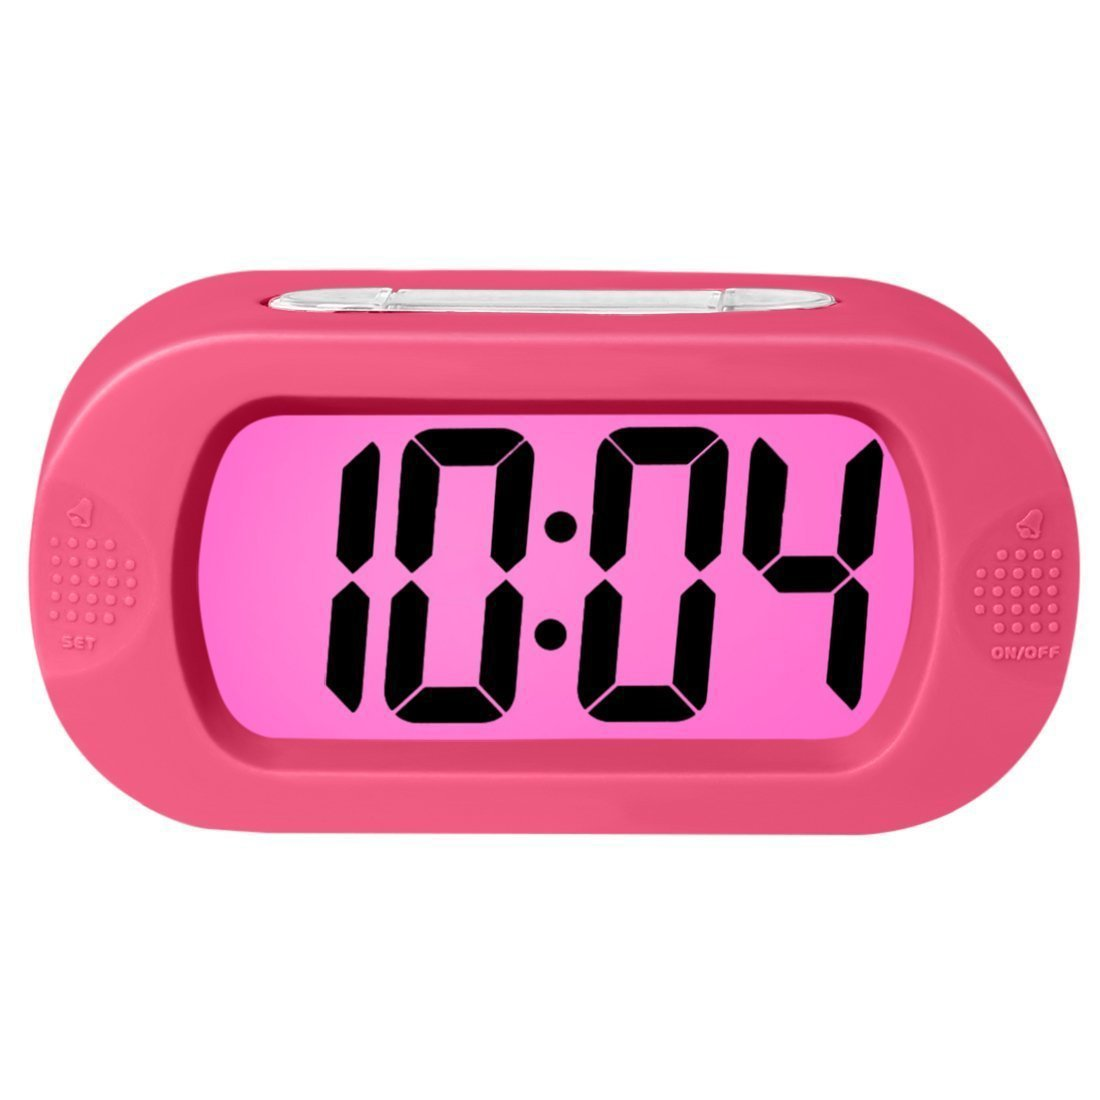 Electronic Digital Alarm Clock, Rosa Schleife Colorful Light Travel Digital Alarm Morning Clock Battery Operated with Repeating Snooze Large Display Progressive Alarm Night Light Home Alarm Clock